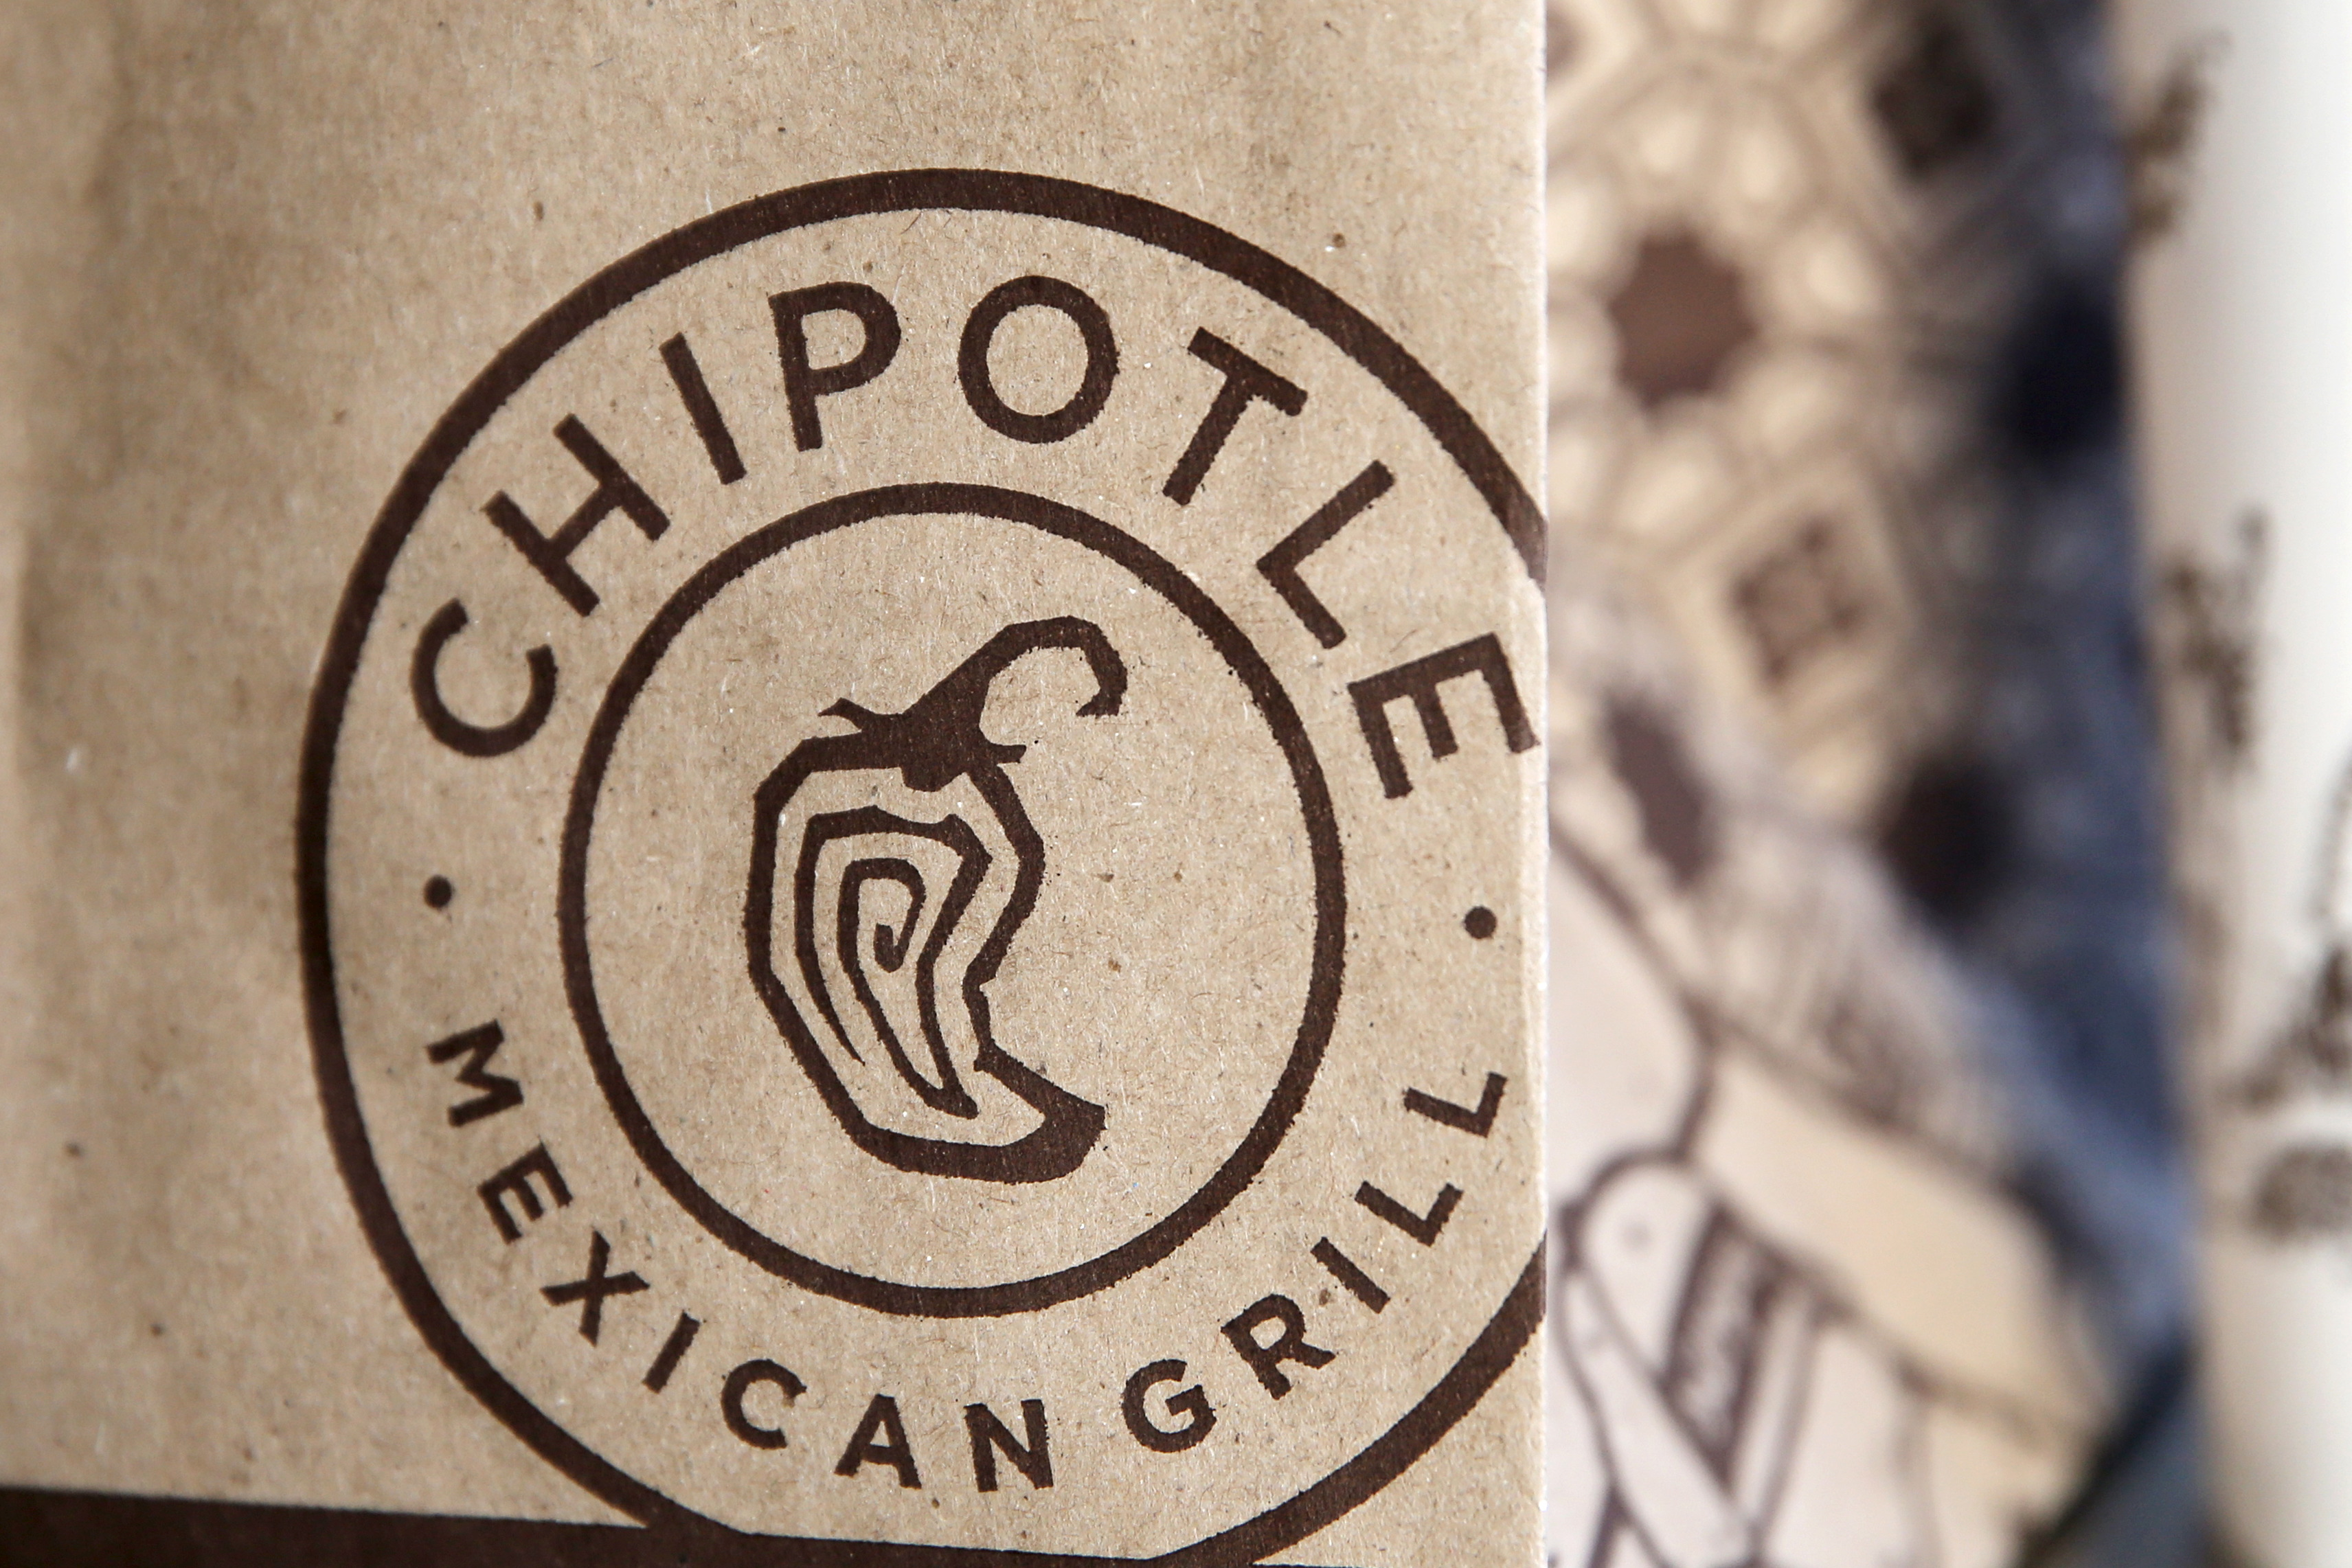 A logo of Chipotle Mexican Grill is seen on one of their bags in Manhattan, New York City, on Nov. 23, 2015